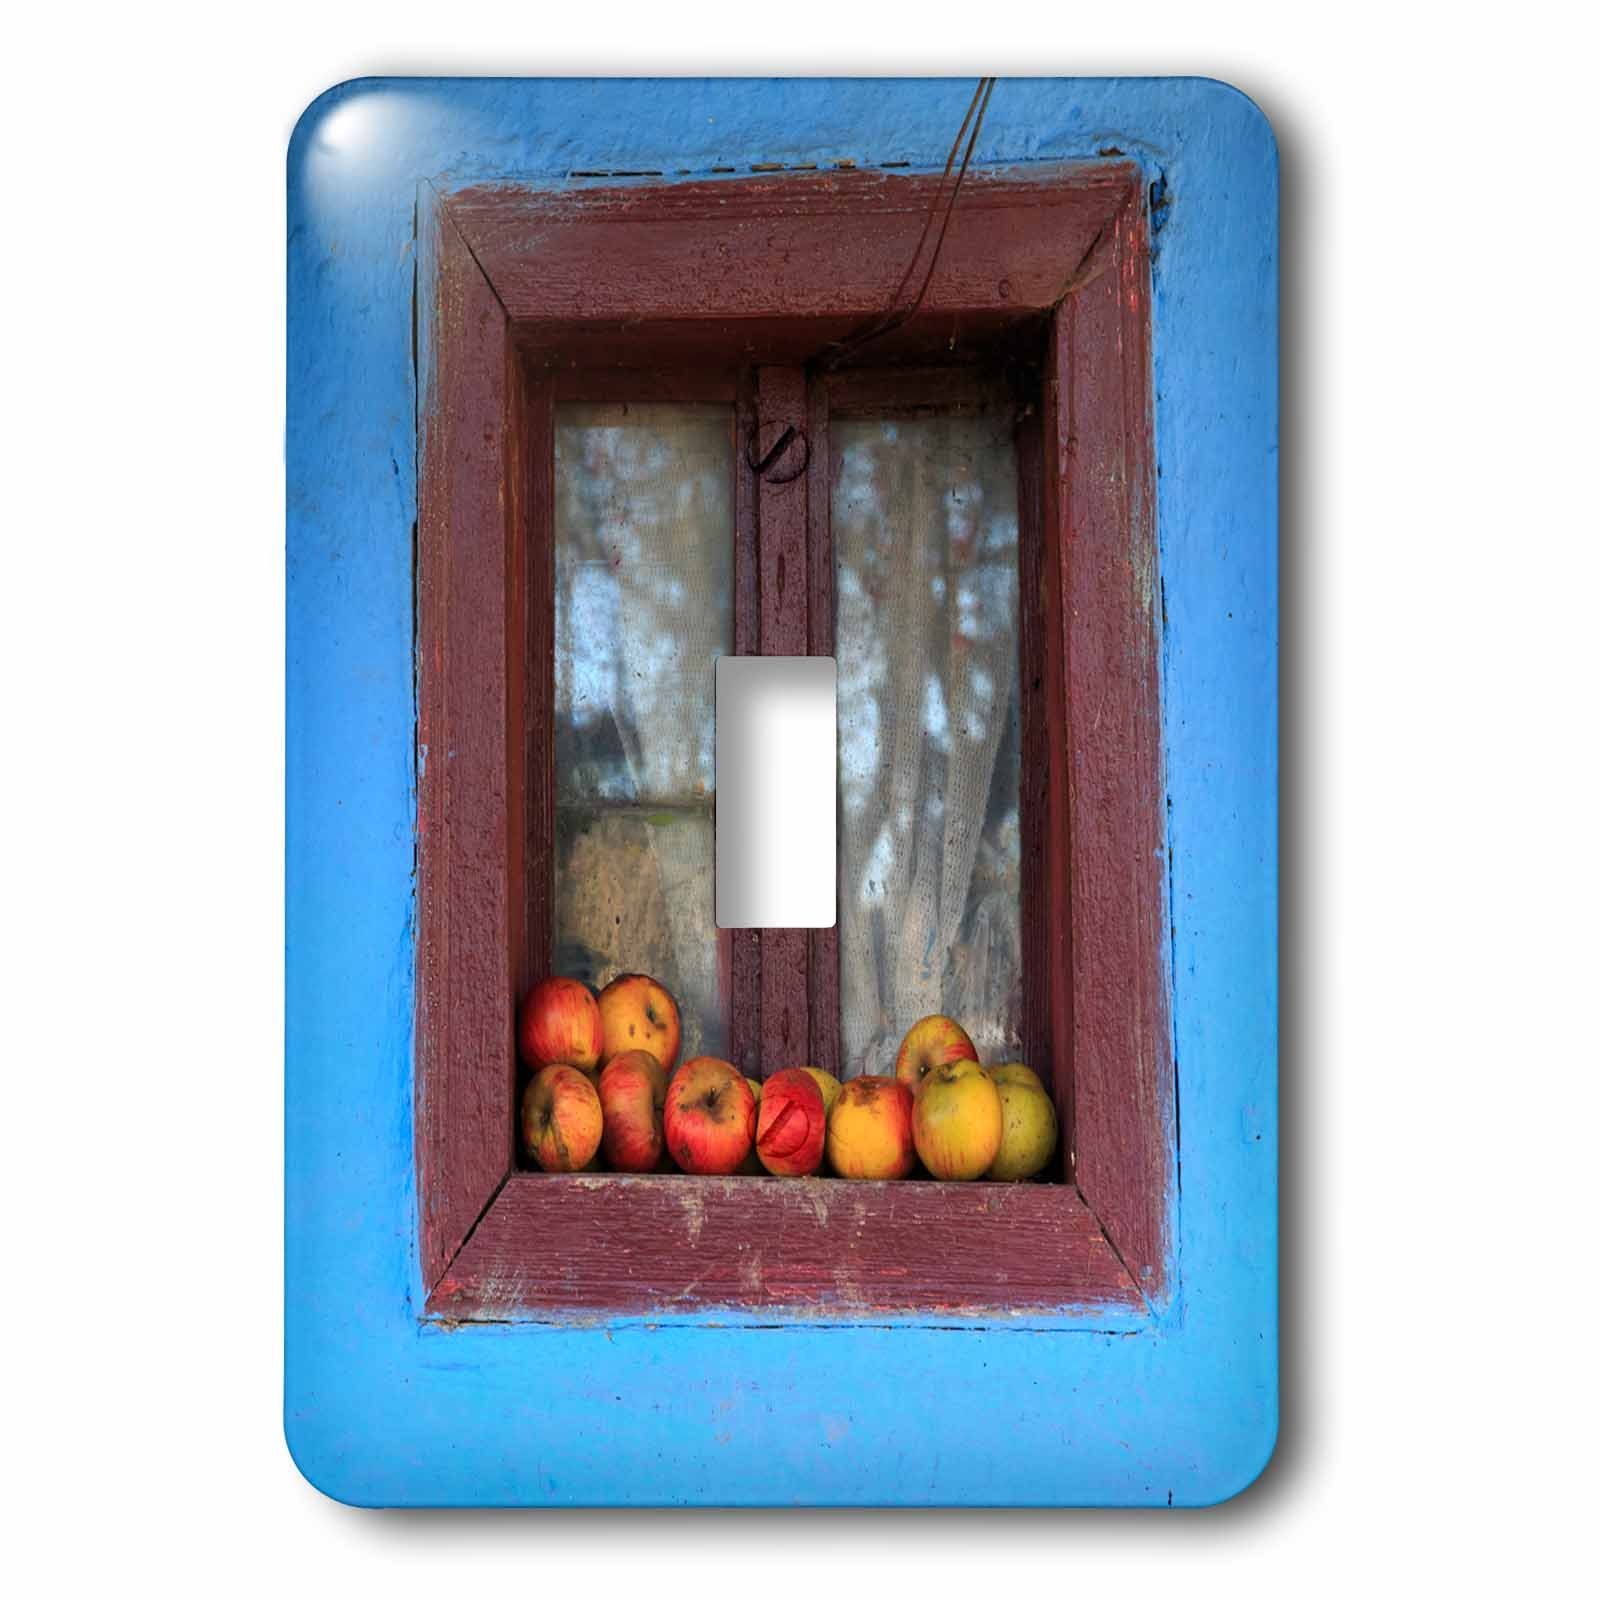 3dRose Danita Delimont - Food - Romania, Dobricu Lapusului. Typical farm house, Window with apples. - Light Switch Covers - single toggle switch (lsp_277876_1)